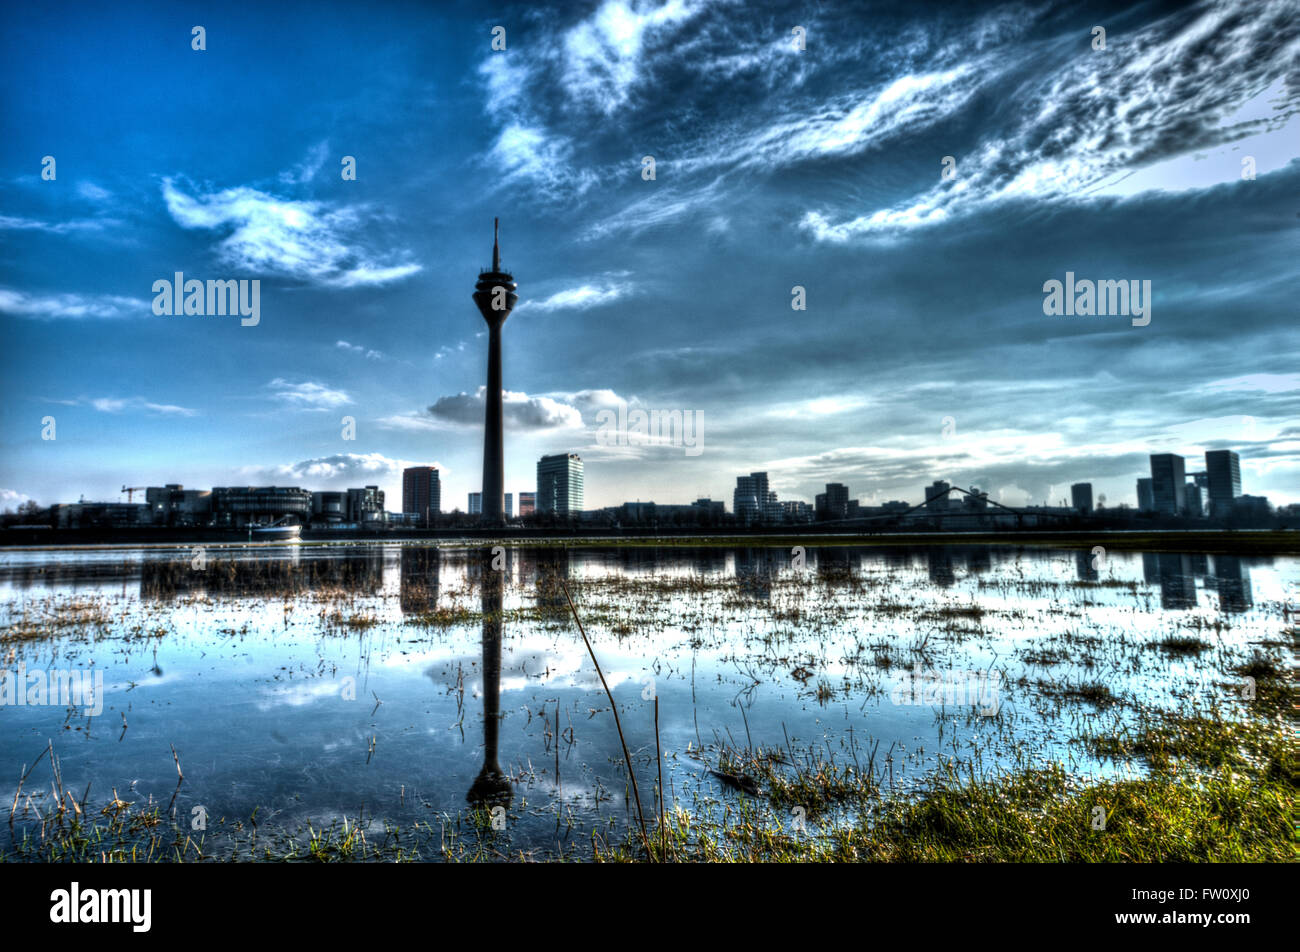 Rhine meadows with reflections at Duesseldorf during floods of river rhine - Stock Image